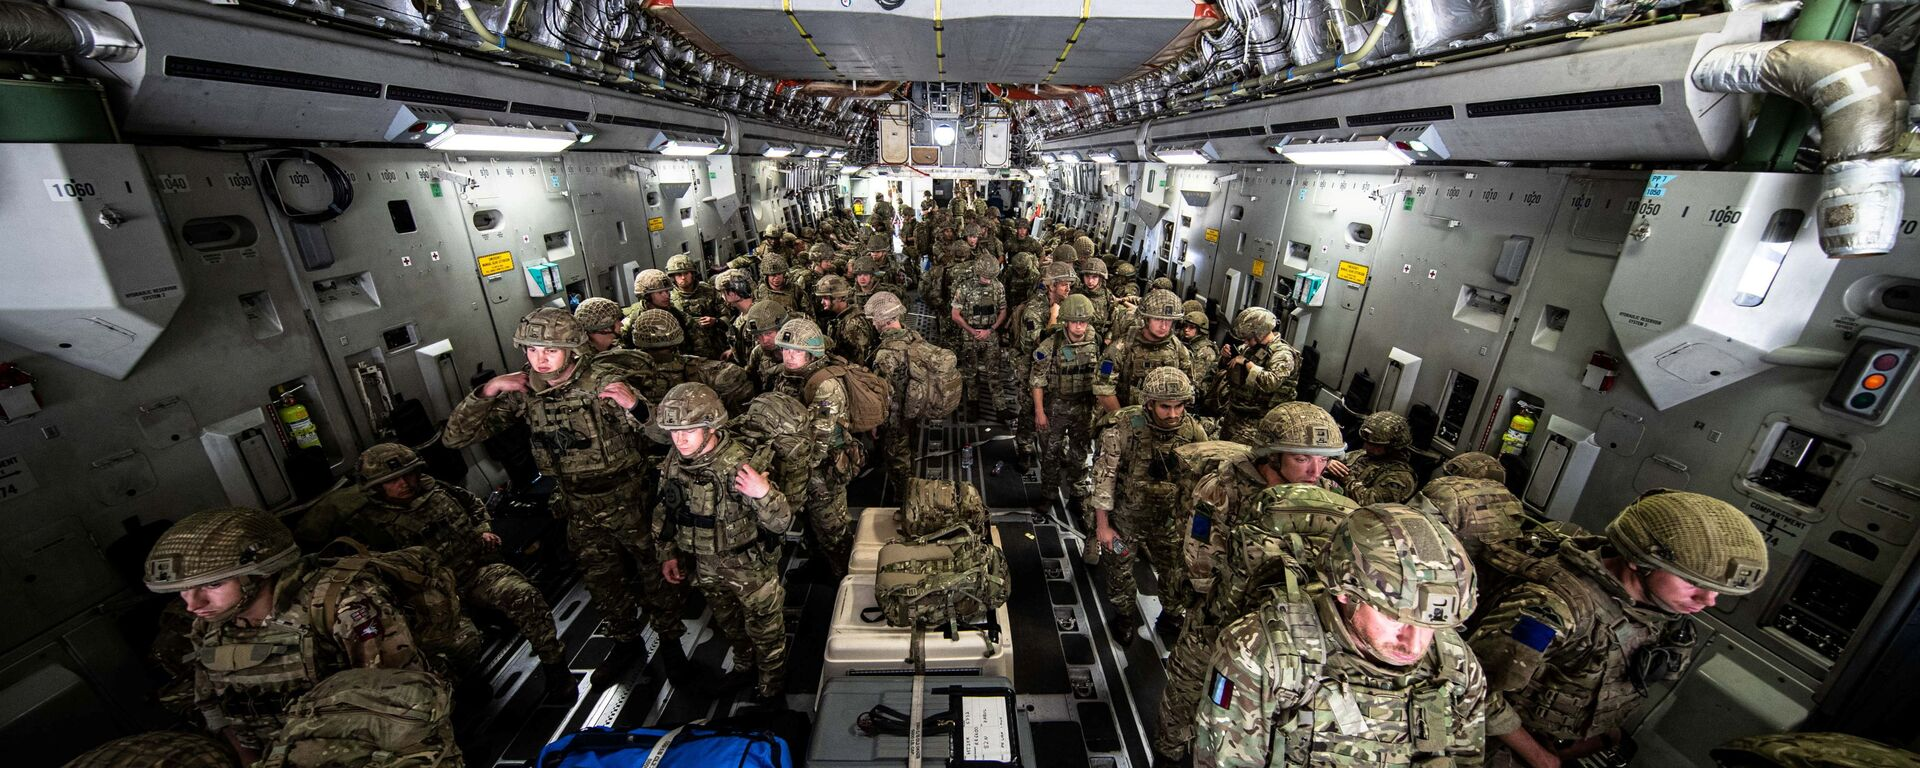 British Forces from 16 Air Assault Brigade arrive in Kabul, Afghanistan, to provide support to British nationals leaving the country, as part of Operation PITTING after Taliban insurgents took control of the presidential palace in Kabul, August 15, 2021. Leading Hand Ben Shread/RAF/UK Ministry of Defence 2021/Handout via REUTERS   THIS IMAGE HAS BEEN SUPPLIED BY A THIRD PARTY. - Sputnik International, 1920, 16.08.2021